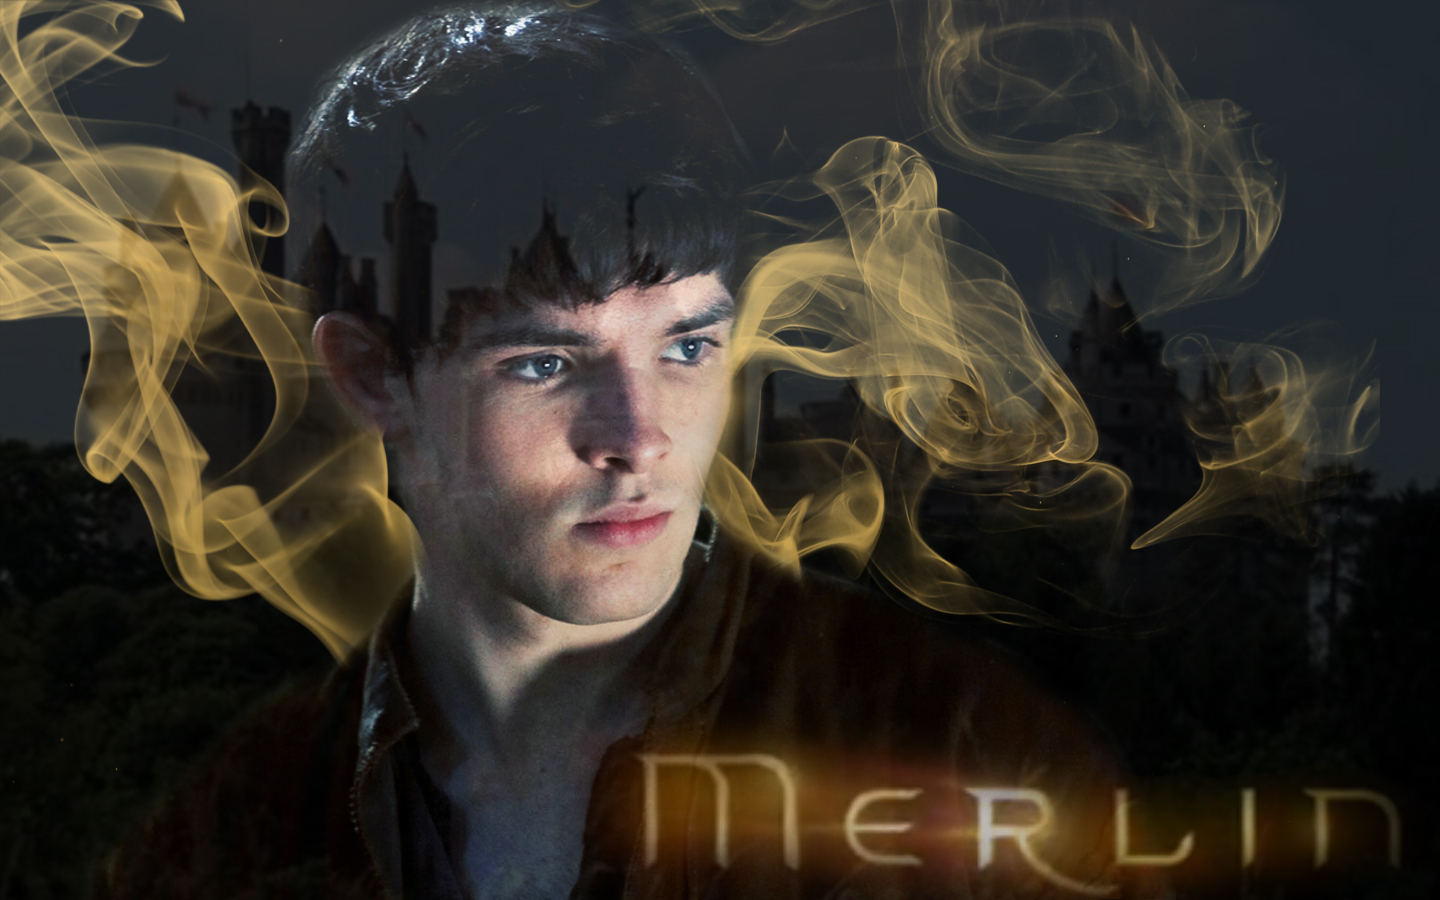 merlin shadow of camelot by piratefairy on deviantart